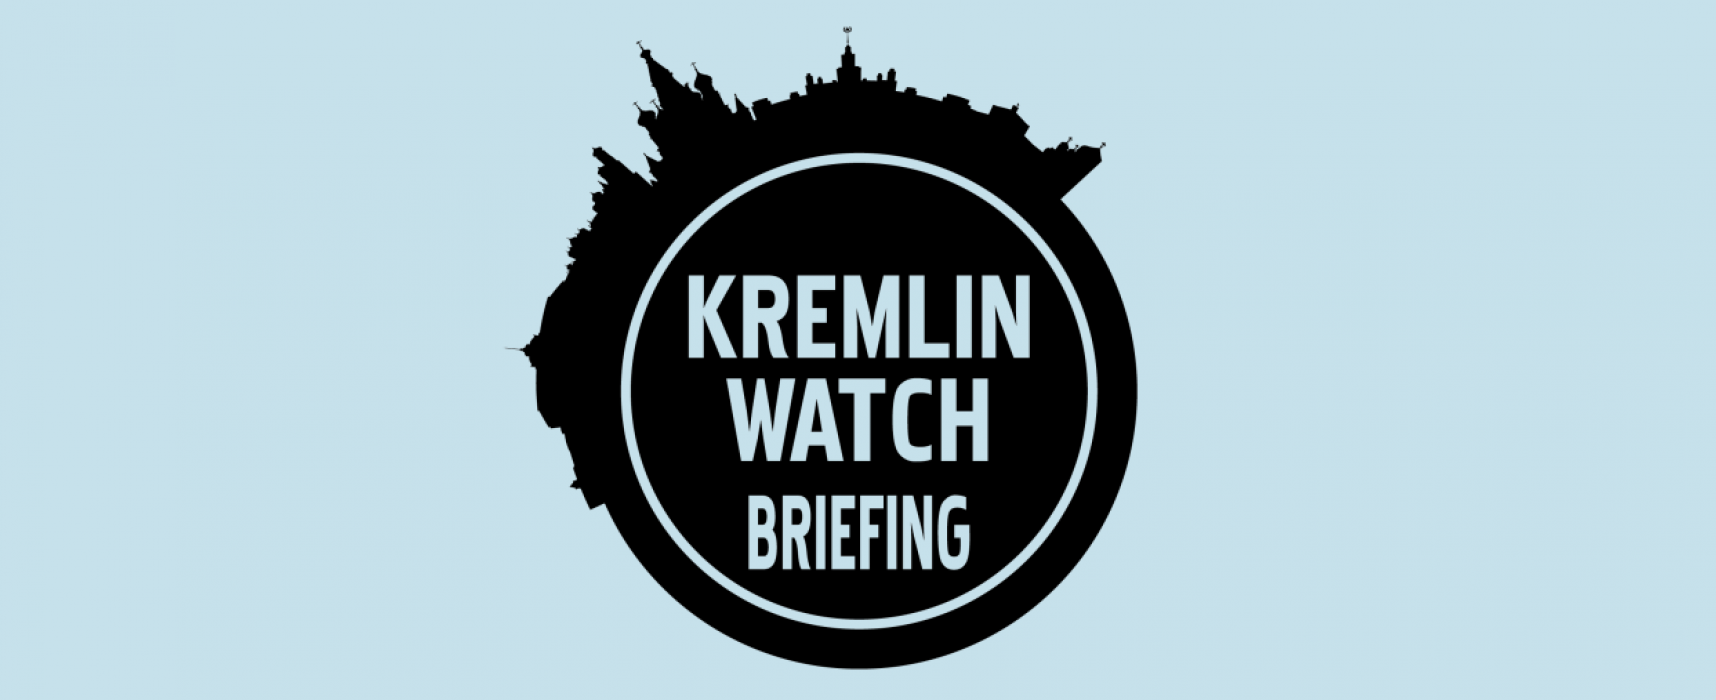 Kremlin Watch Briefing: Post-COVID world & Russia